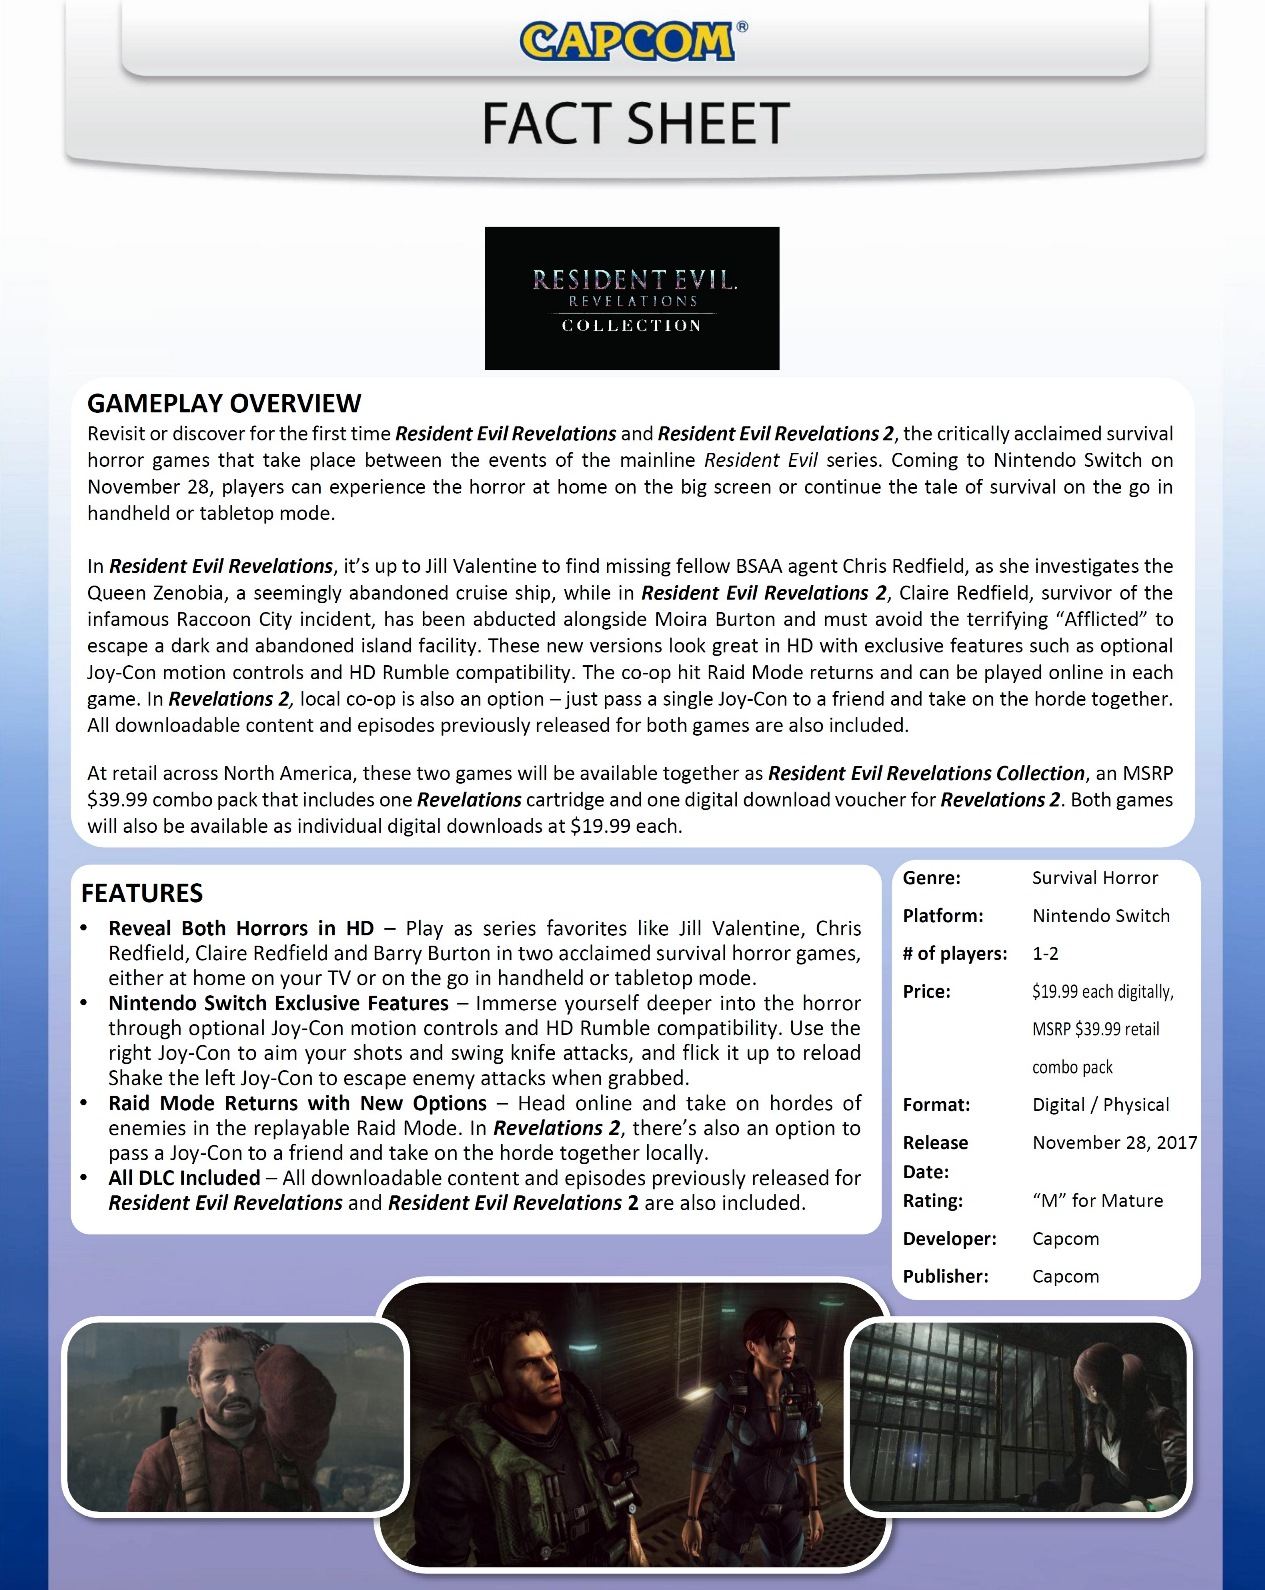 Capcom also sent out a fact sheet for Resident Evil Revelations Collection, attached below. It goes over the included features and more.